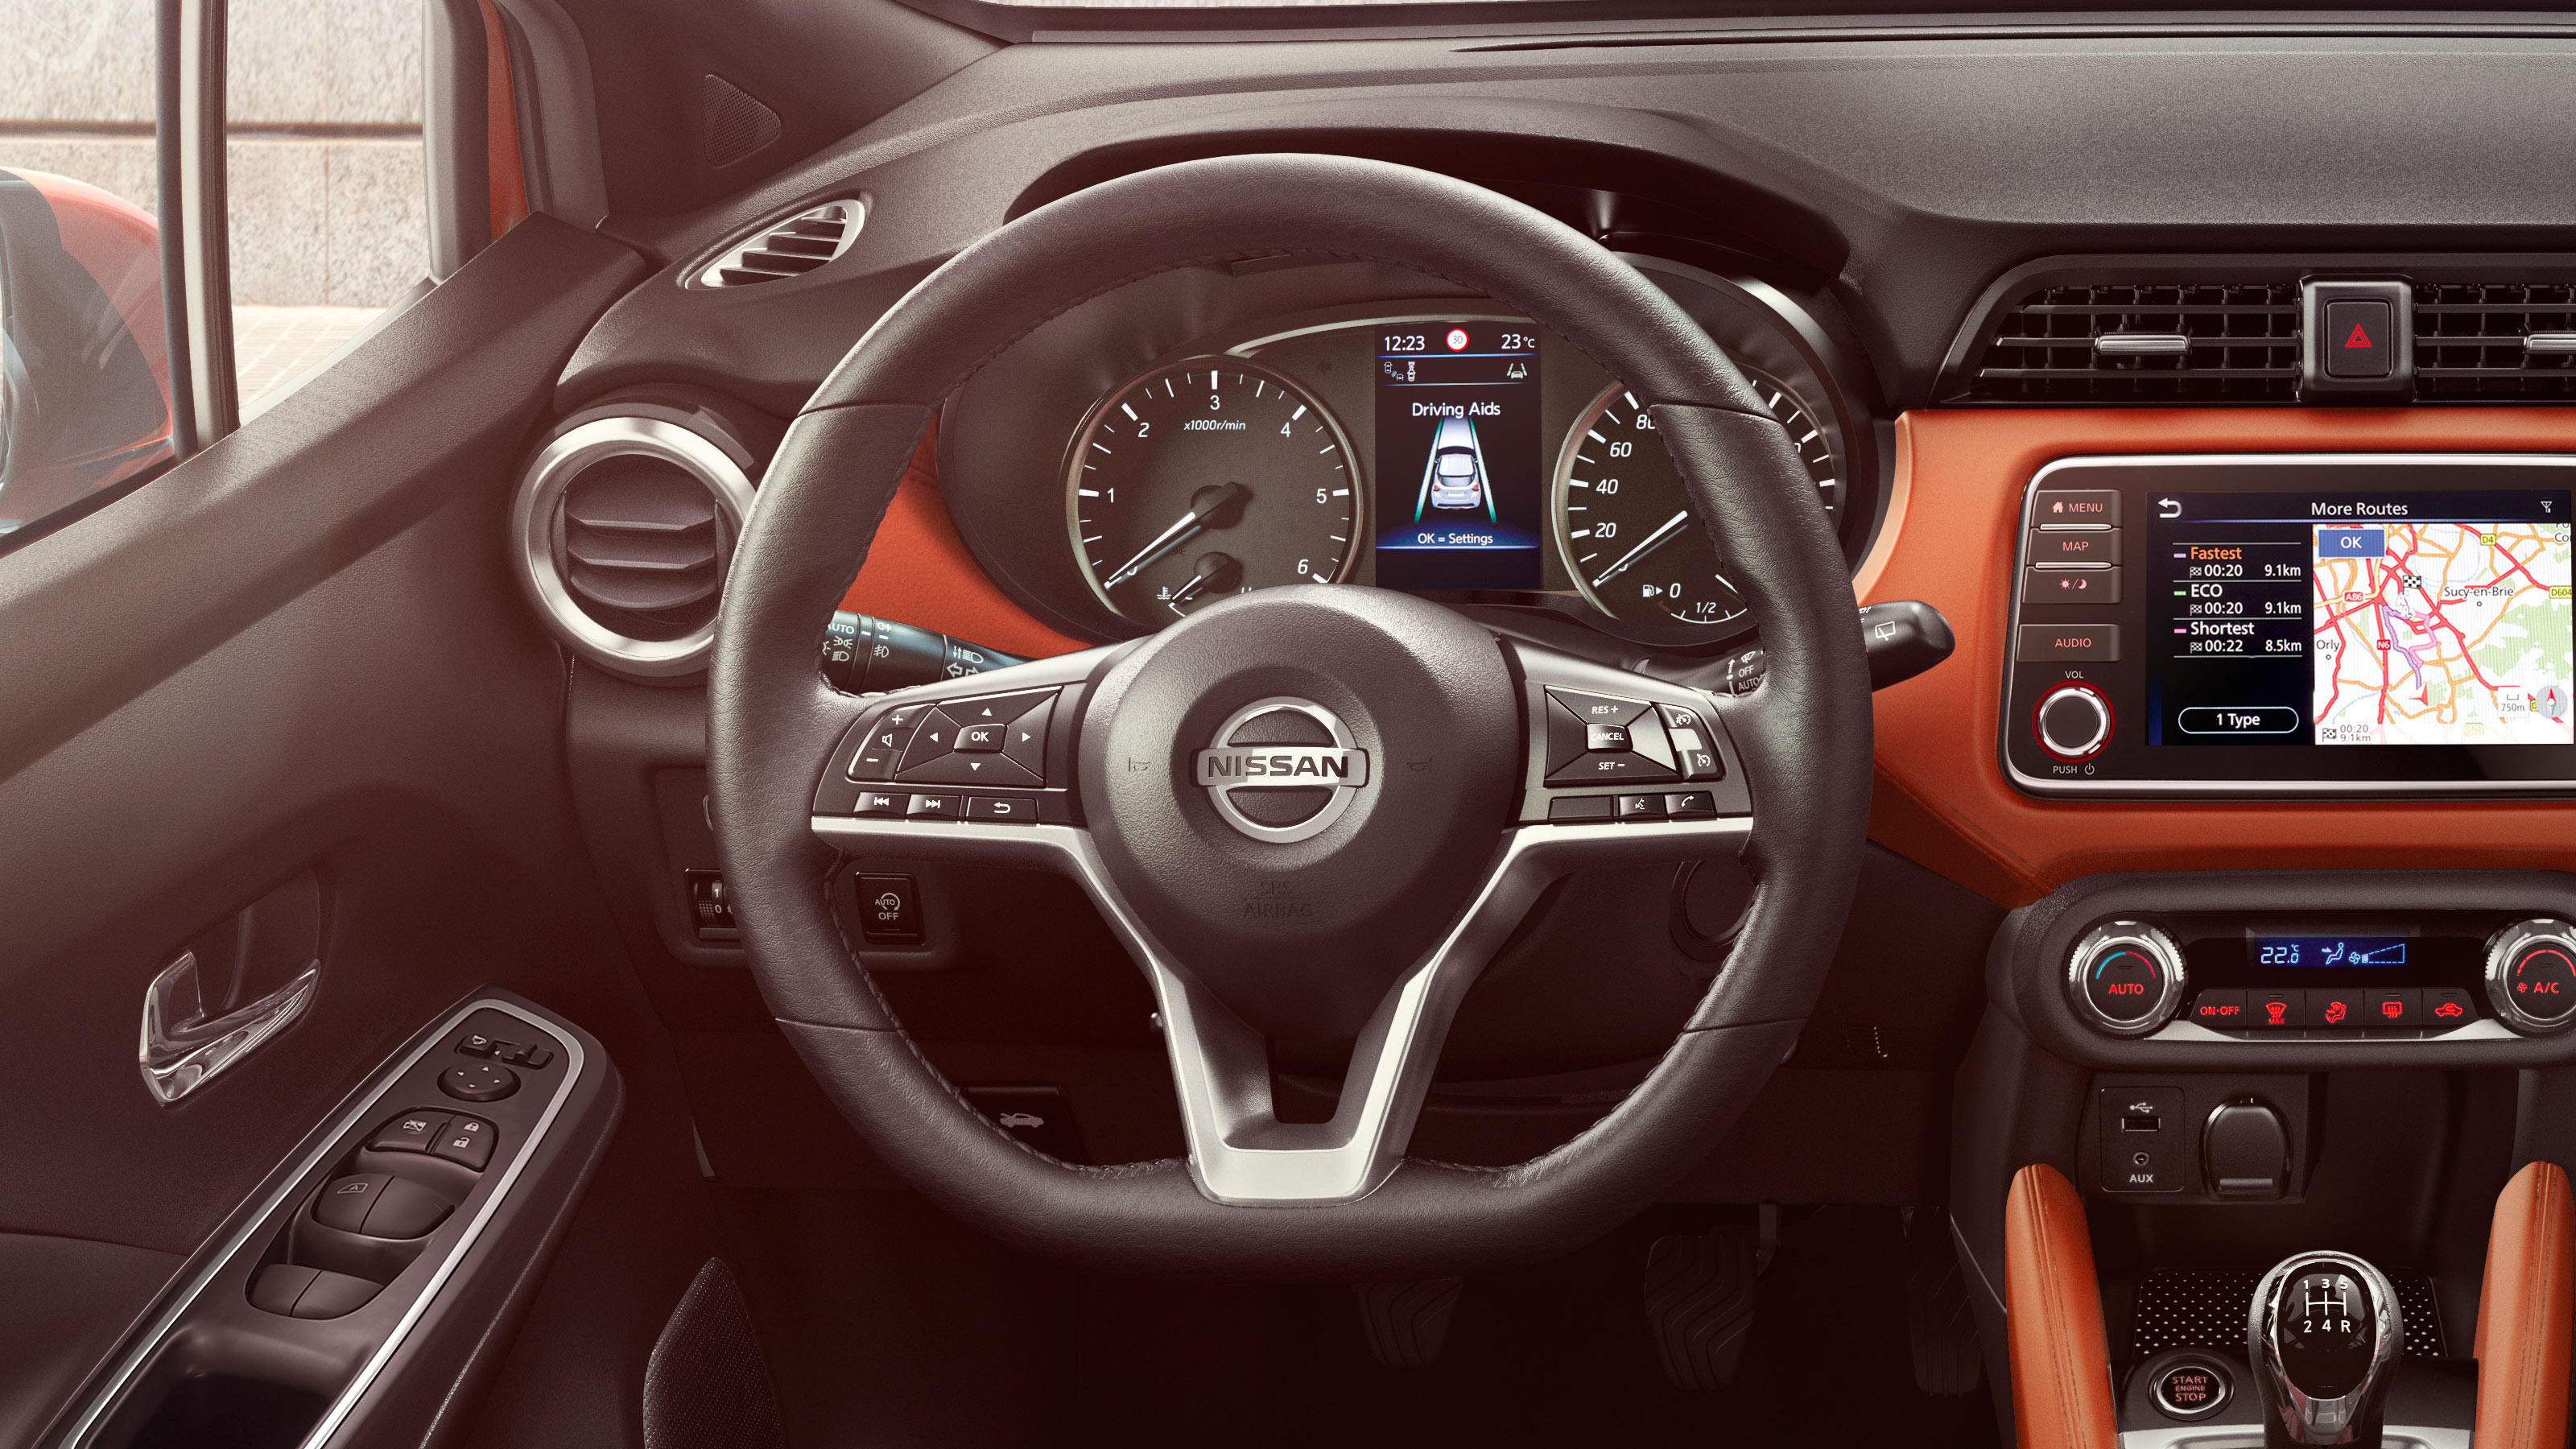 Nissan Micra D-shaped Steering Wheel